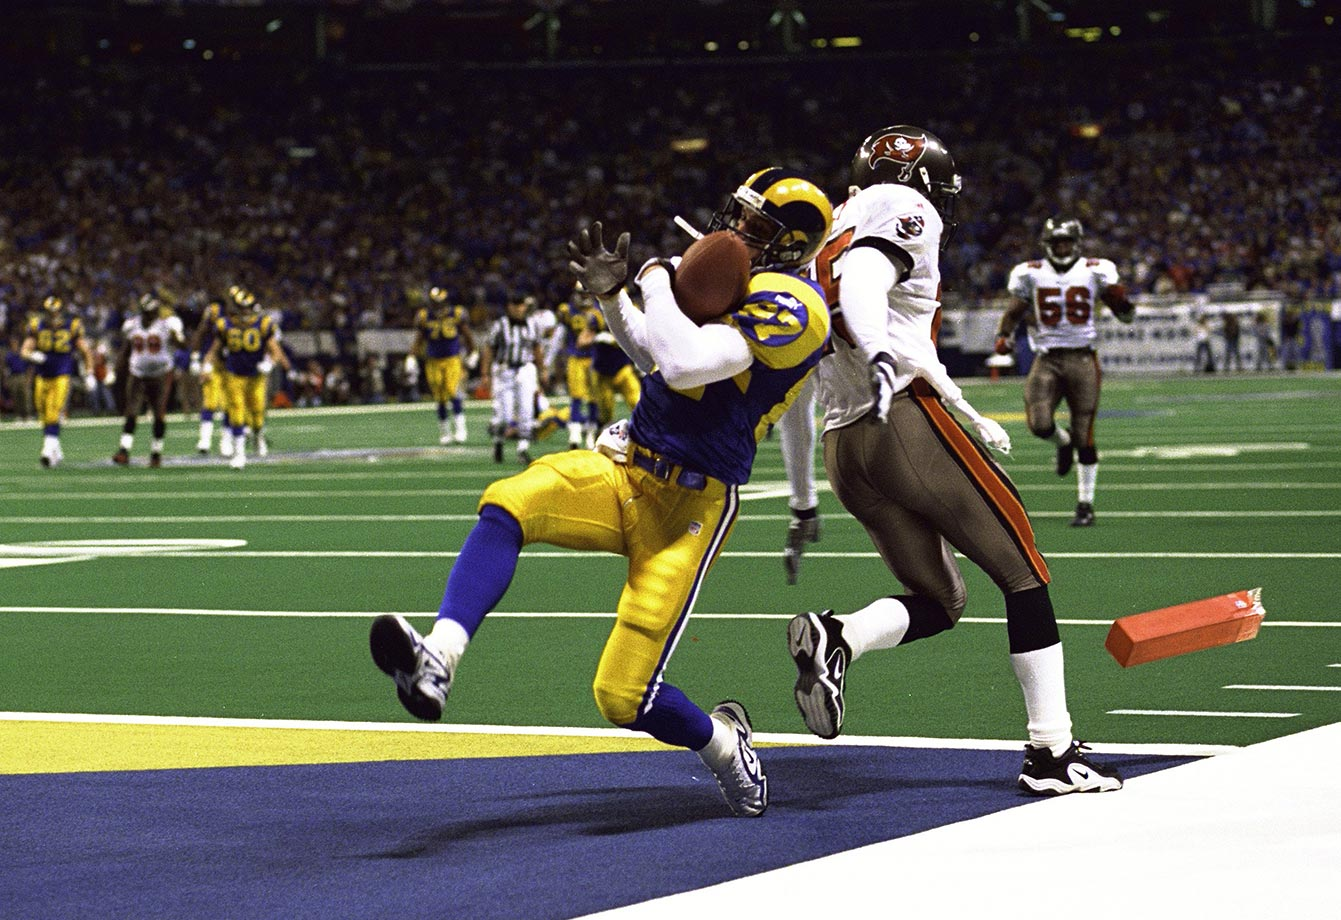 1999: Ricky Proehl's leaping end-zone catch on a 30-yard TD pass from Kurt Warner. It provided the winning points in the Rams' NFC title game playoff win over Tampa Bay.